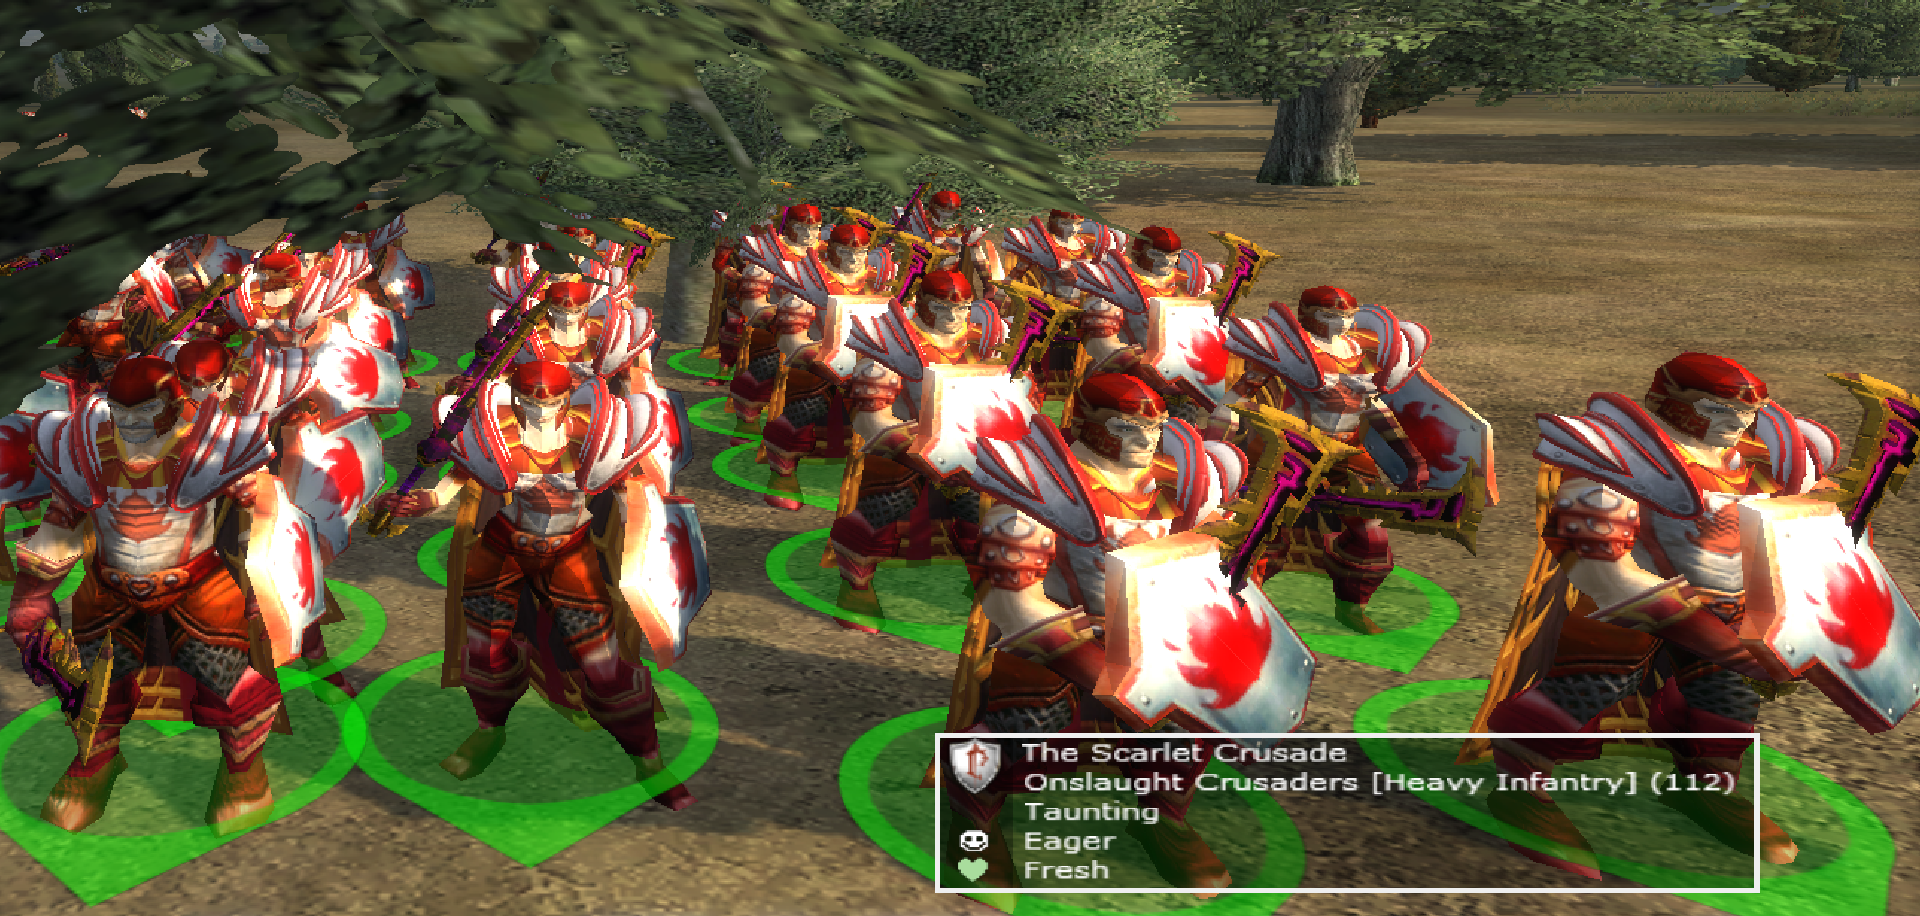 New Scarlet Crusade unit -